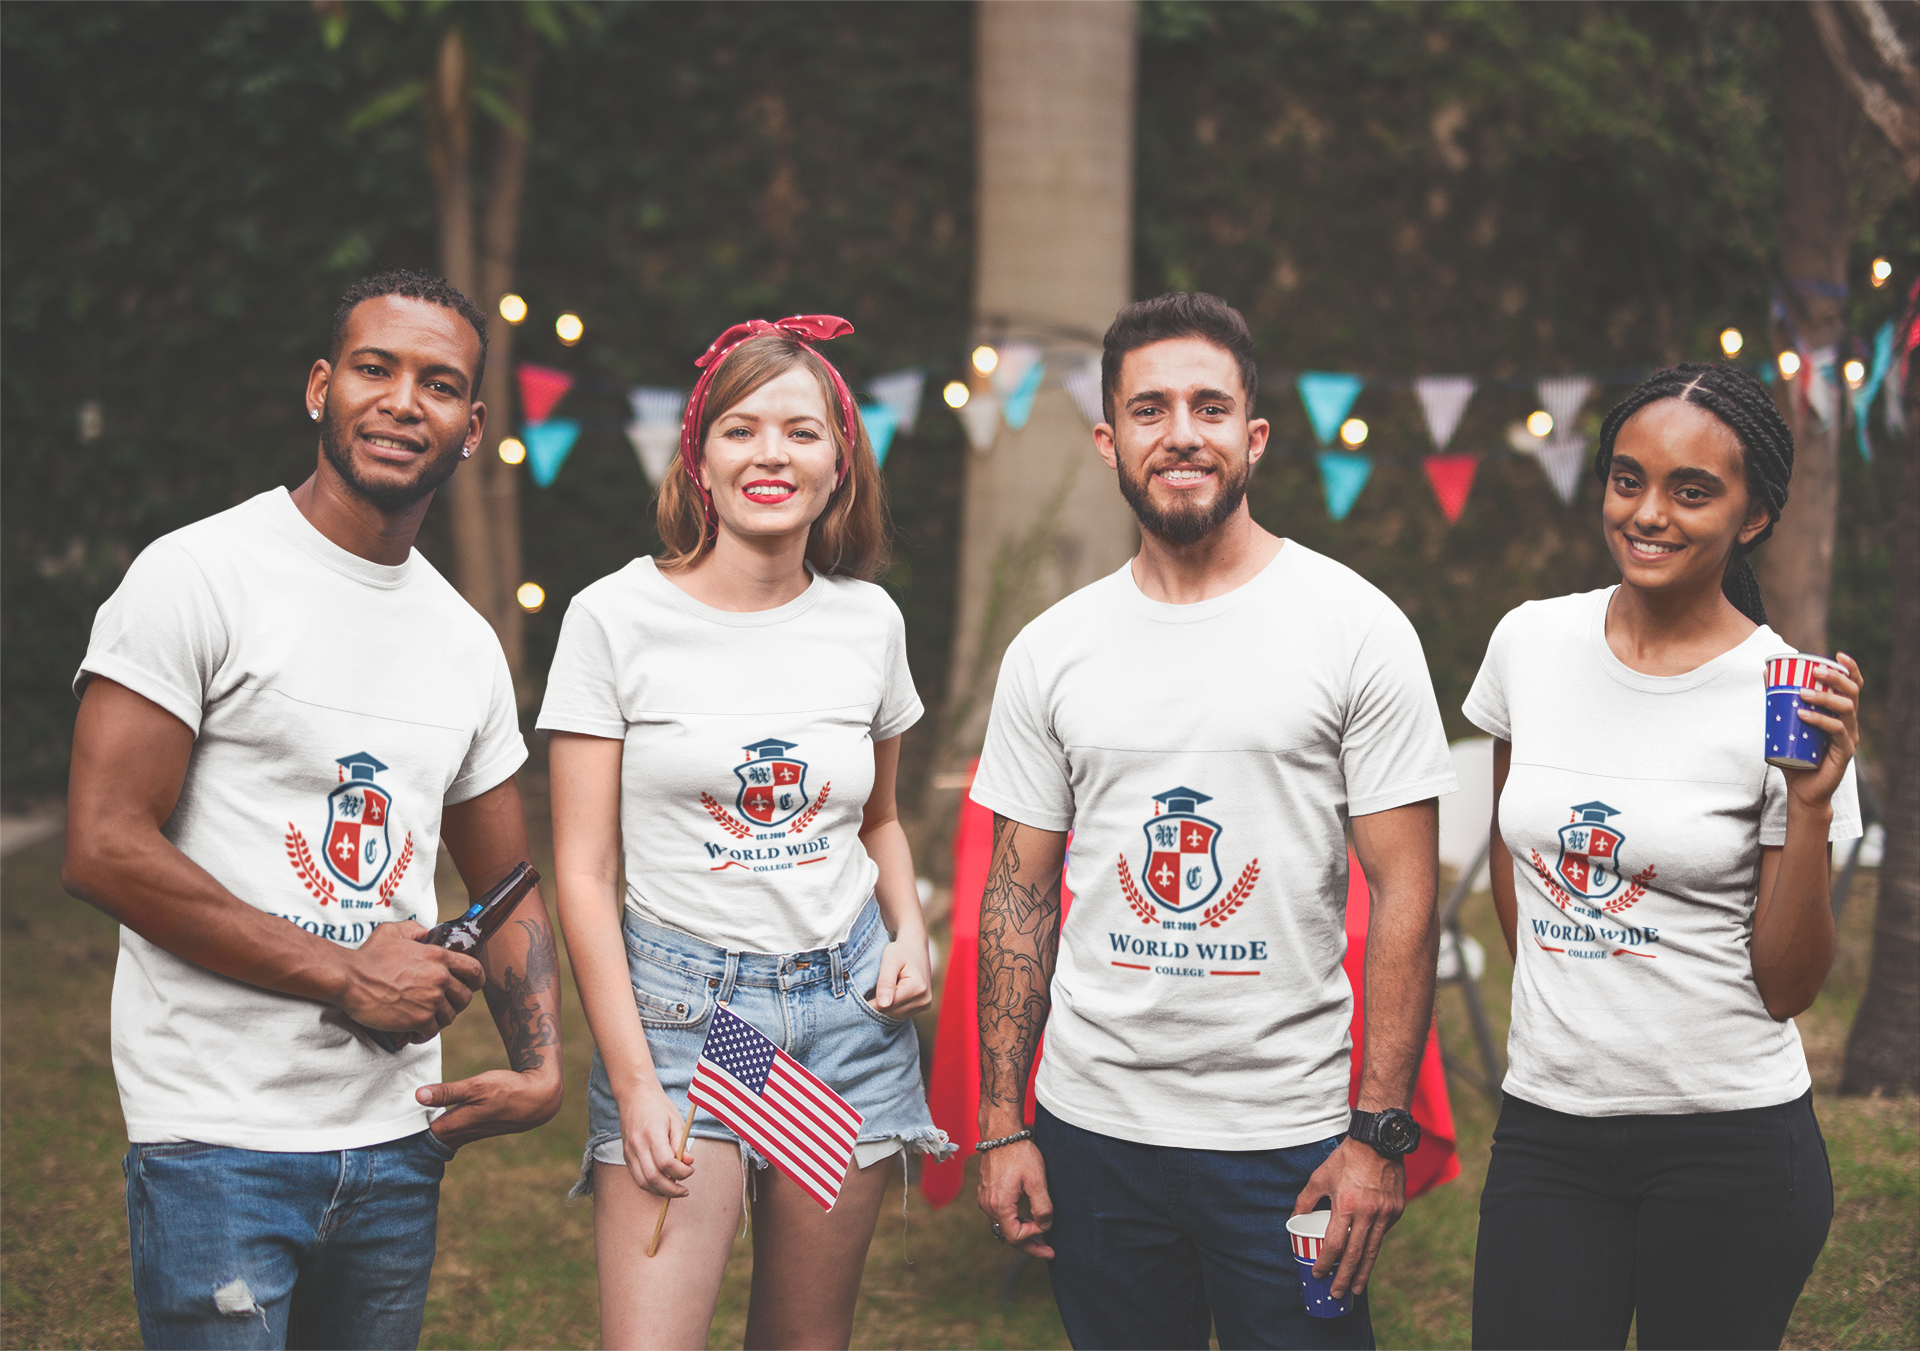 interracial-group-of-four-friends-wearing-tshirts-mockup-at-a-bbq-party-a20837.png